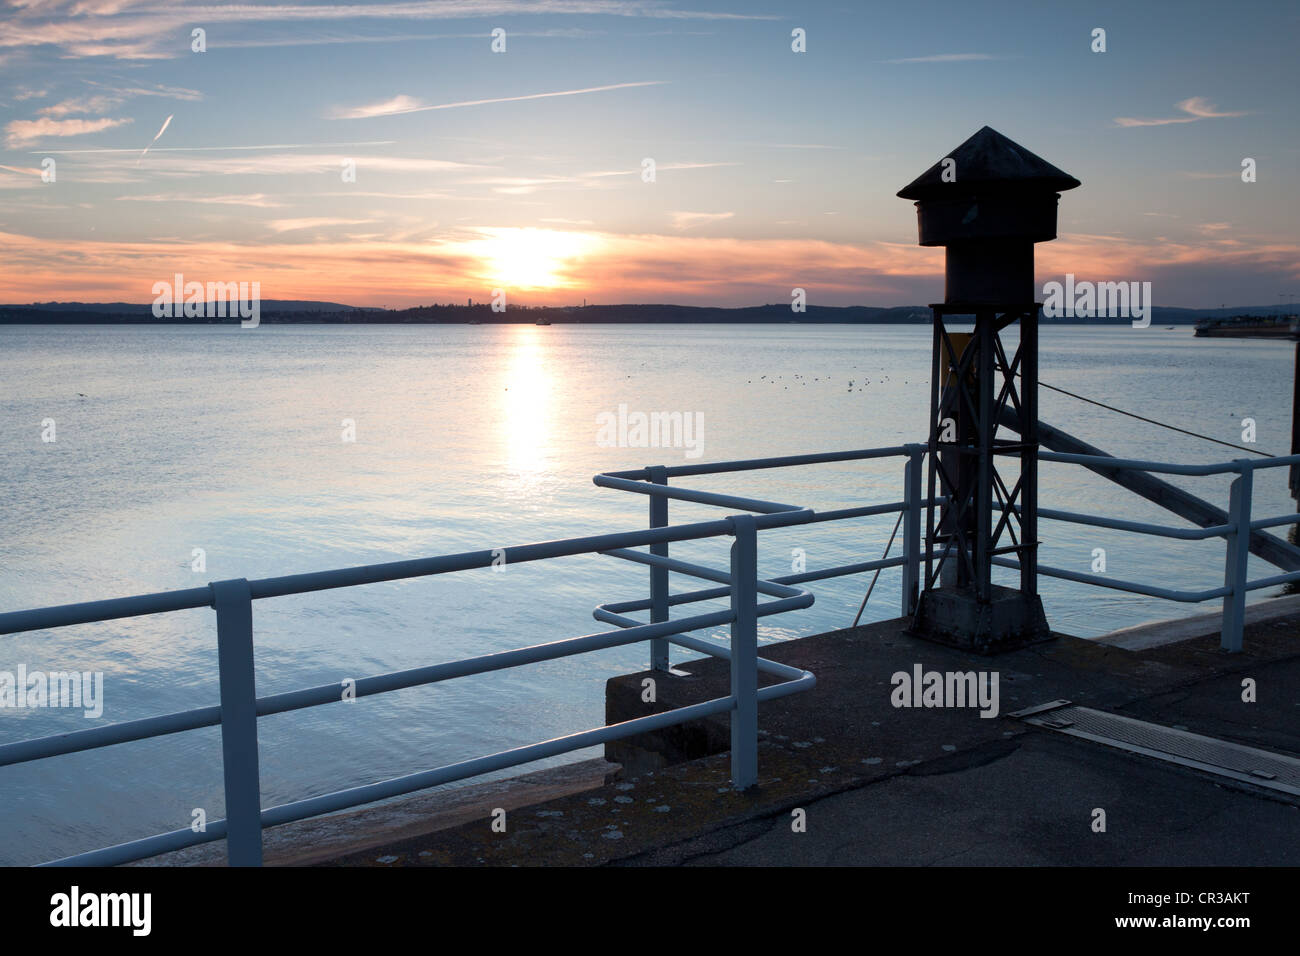 Old fog horn on the pier in Meersburg on Lake Constance, overlooking the lake towards Konstanz at sunset, Baden - Stock Image